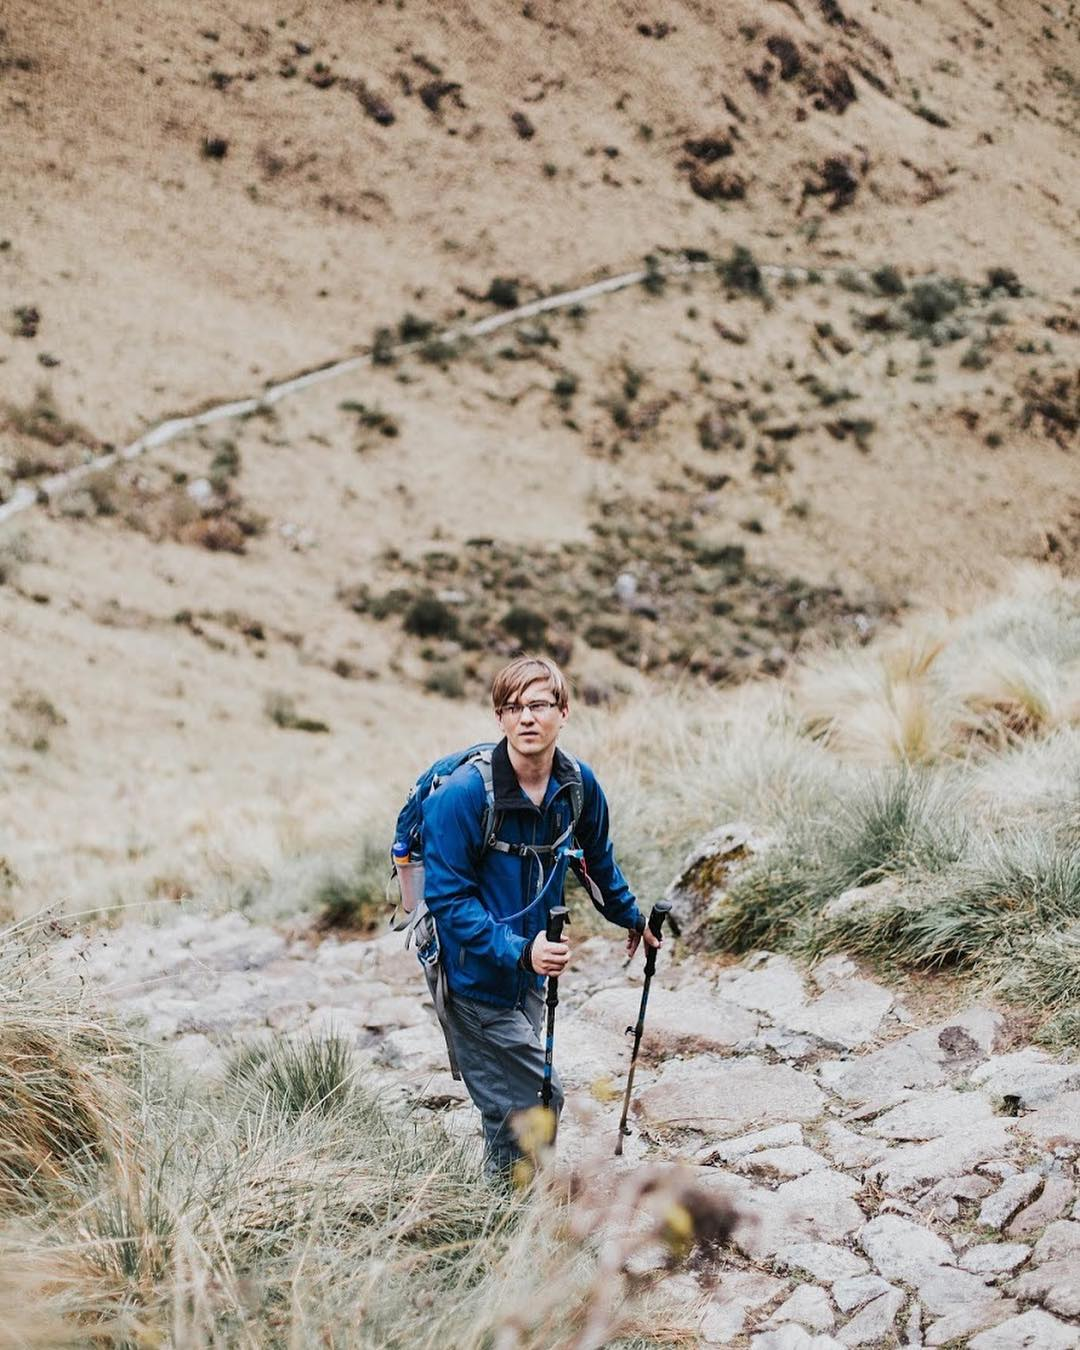 A man in a blue jacket and hiking gear looking to the side on a mountain path.